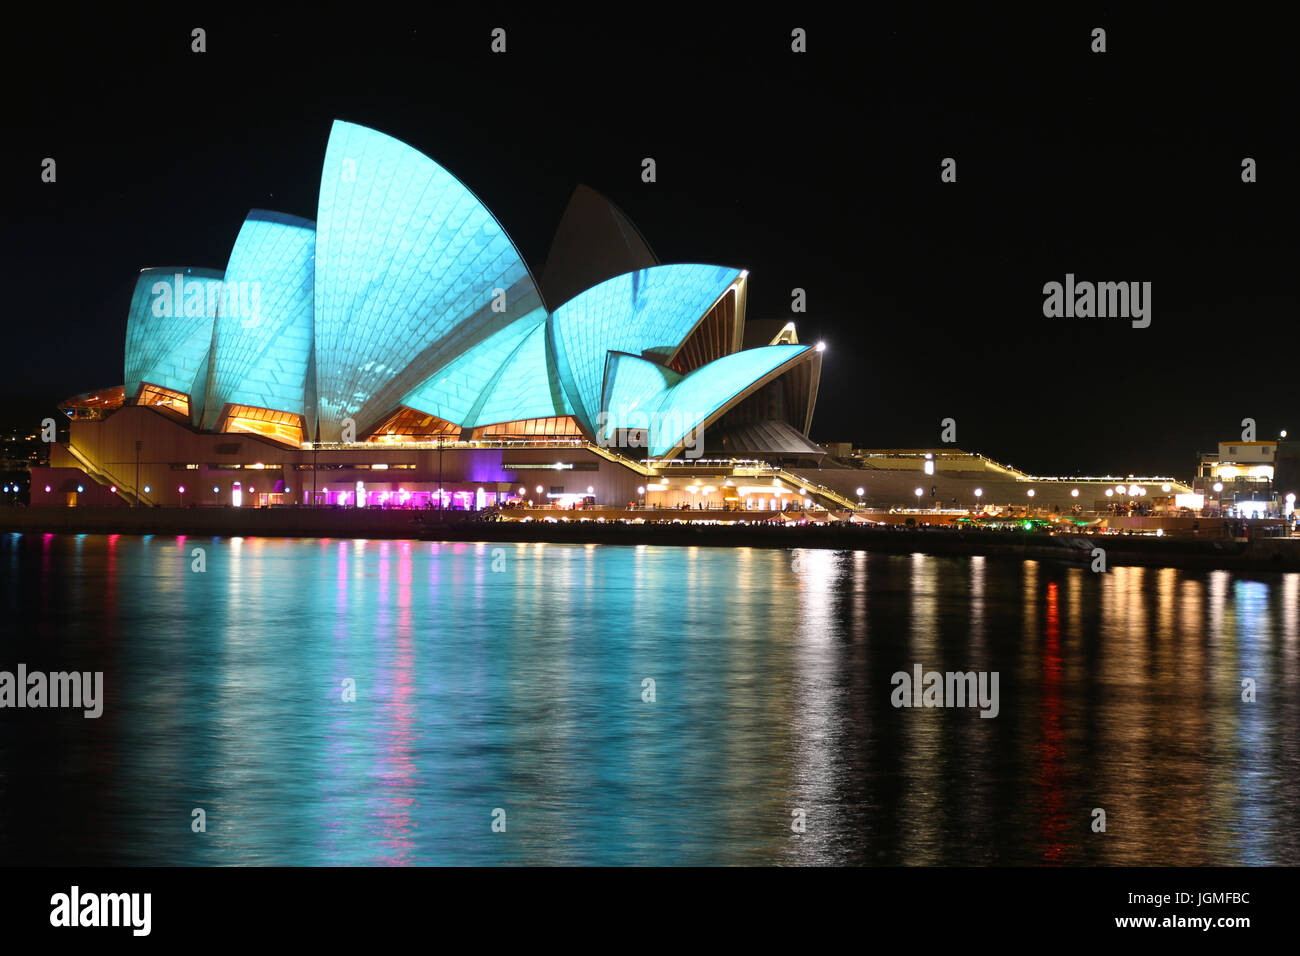 Sydney Opera House, NSW, Australia at night - Stock Image